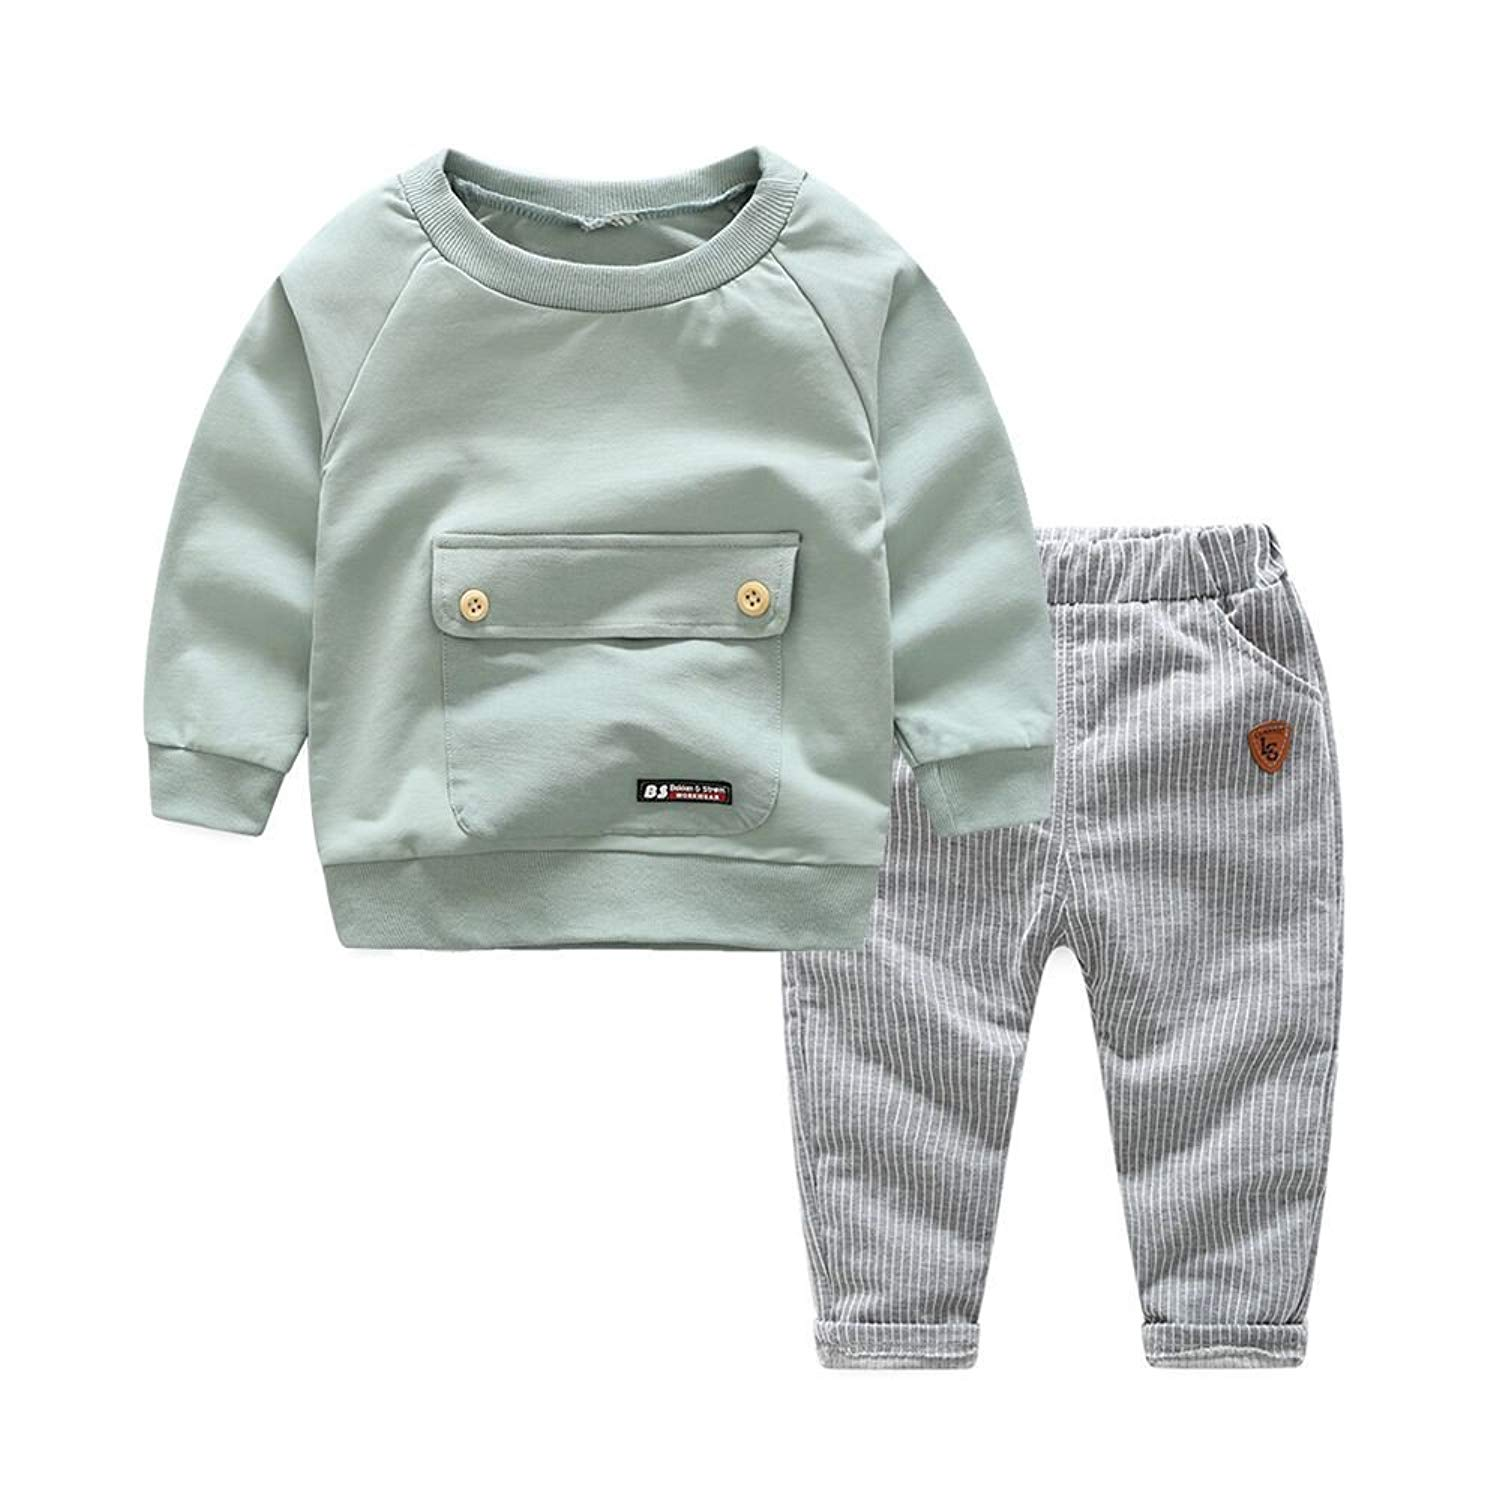 Moyikiss Studio Organic Cotton Baby Boys Girls Casual Clothes Long Sleeve T-Shirts+Trousers 2Pcs Outfit Set